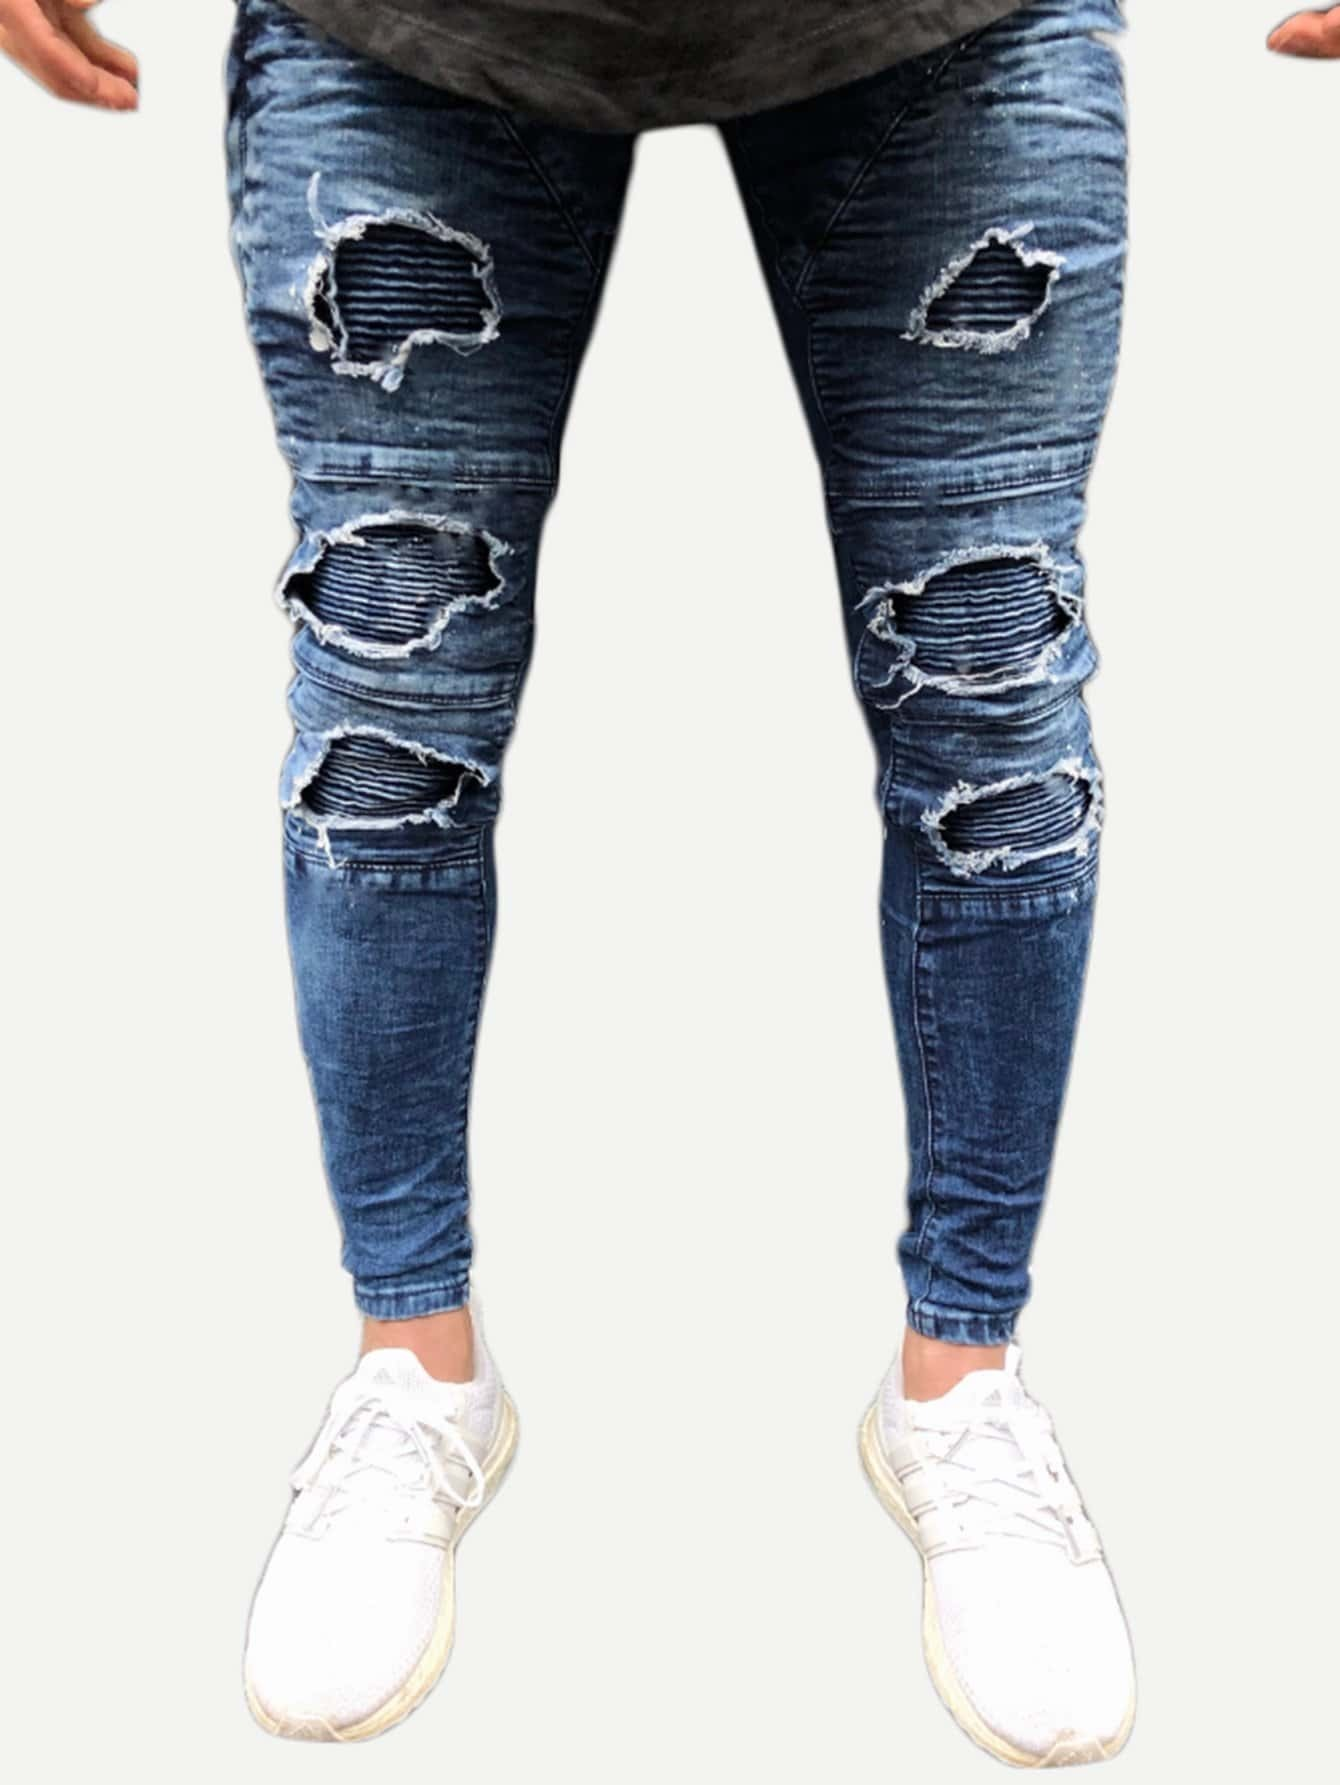 Men Destroyed Skinny Jeans nostalgia retro design fashion men jeans european stylish dimensional knee frayed hole destroyed ripped jeans men biker jeans